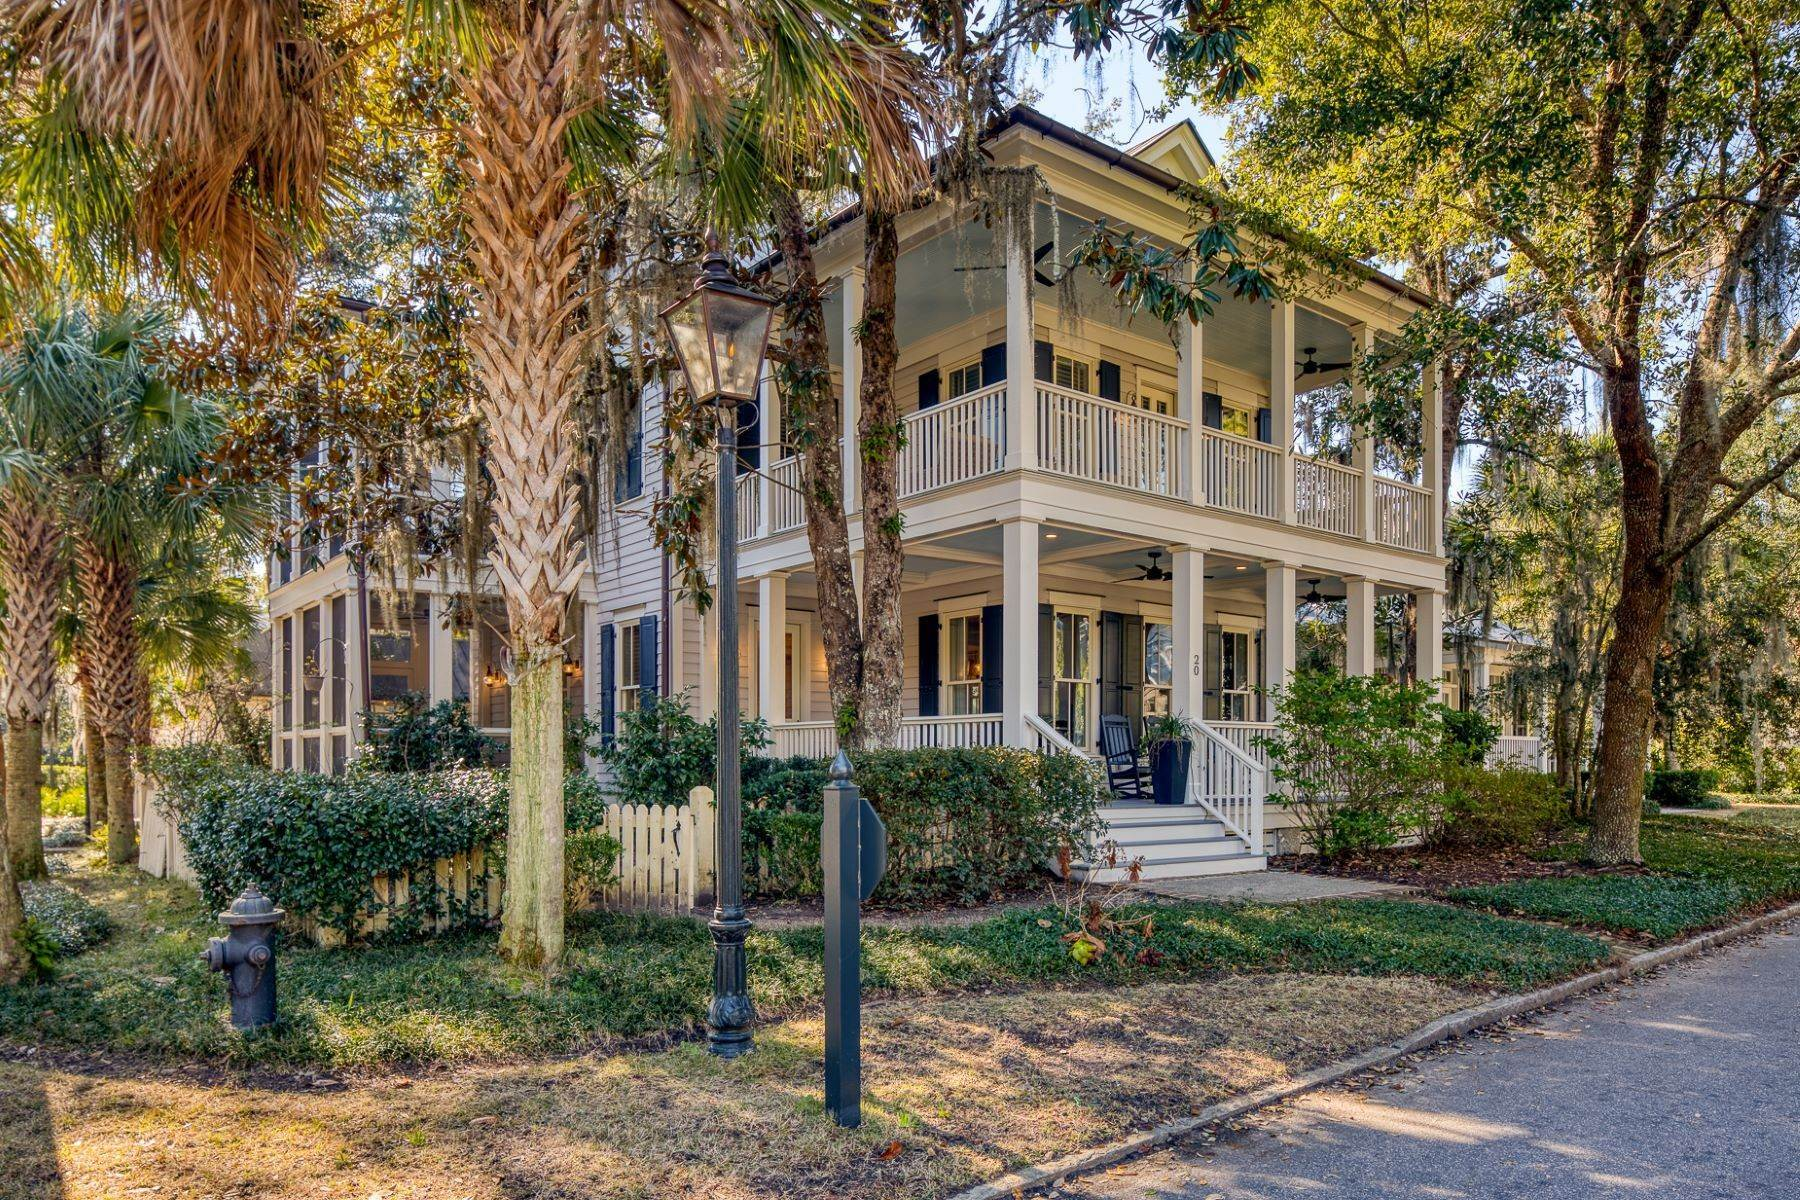 Property for Sale at The Heart of Wilson Village 20 S. Drayton Street Bluffton, South Carolina 29910 United States